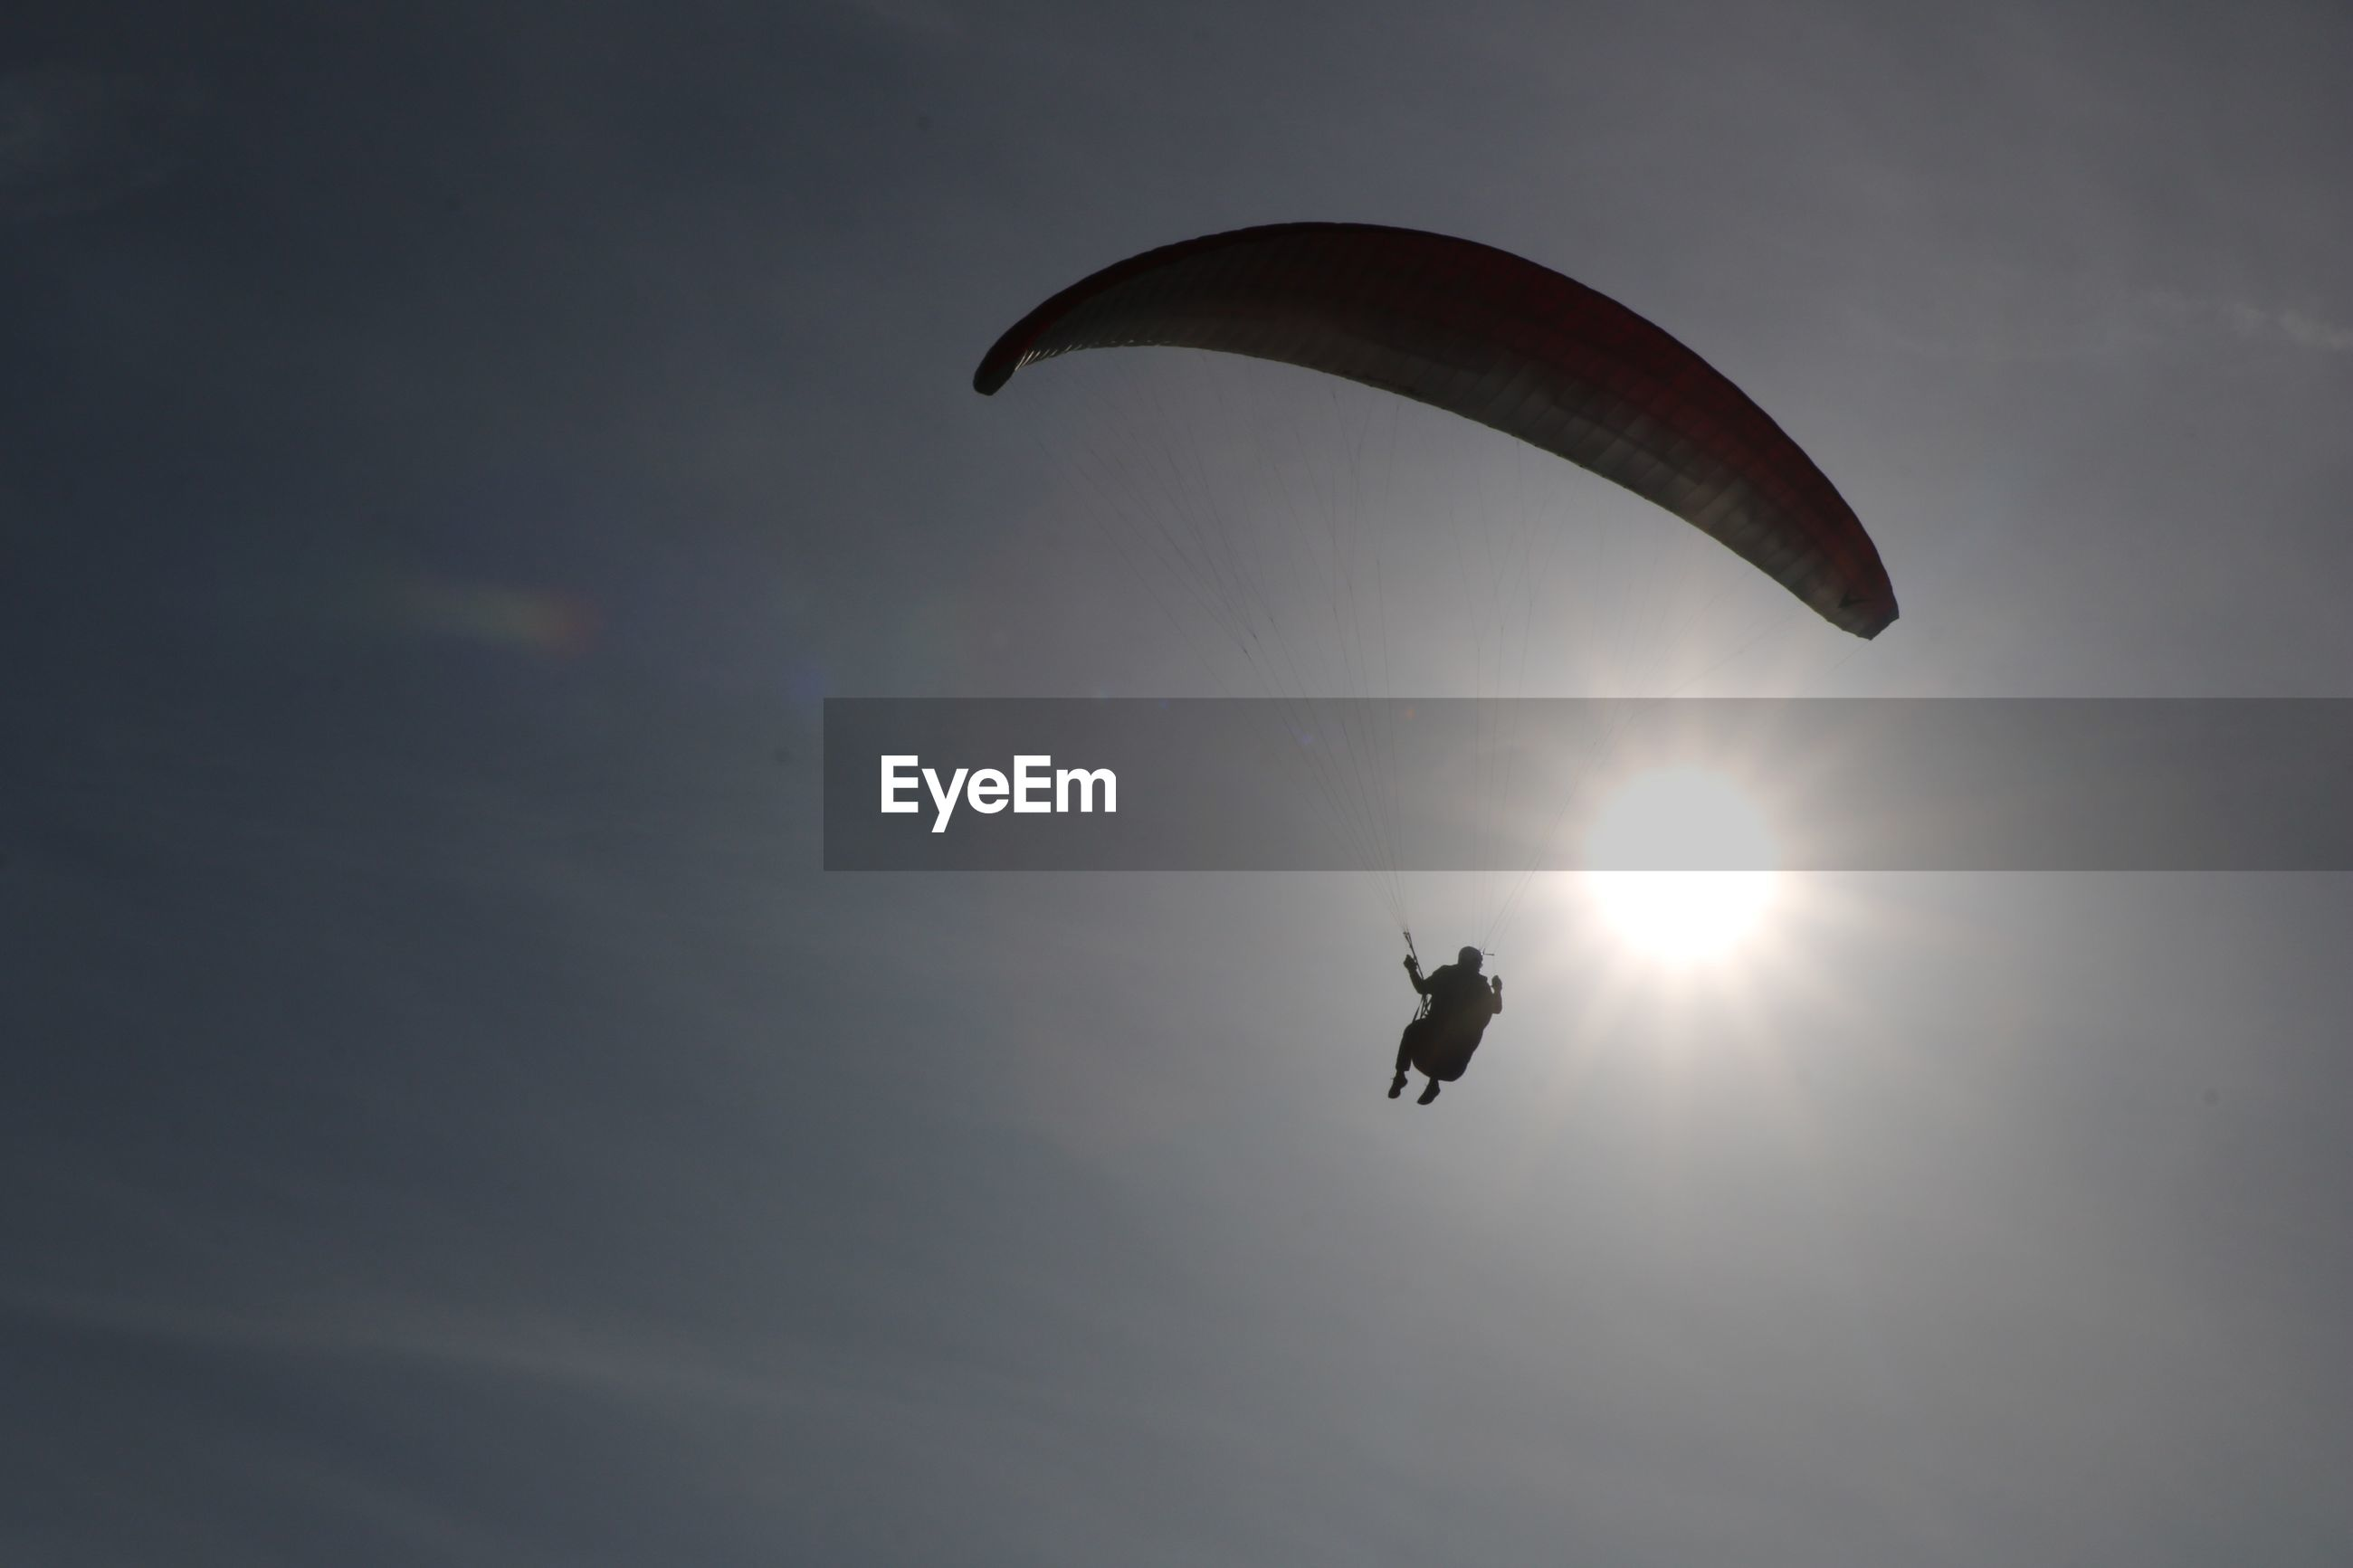 Low angle view of silhouette person paragliding against sky